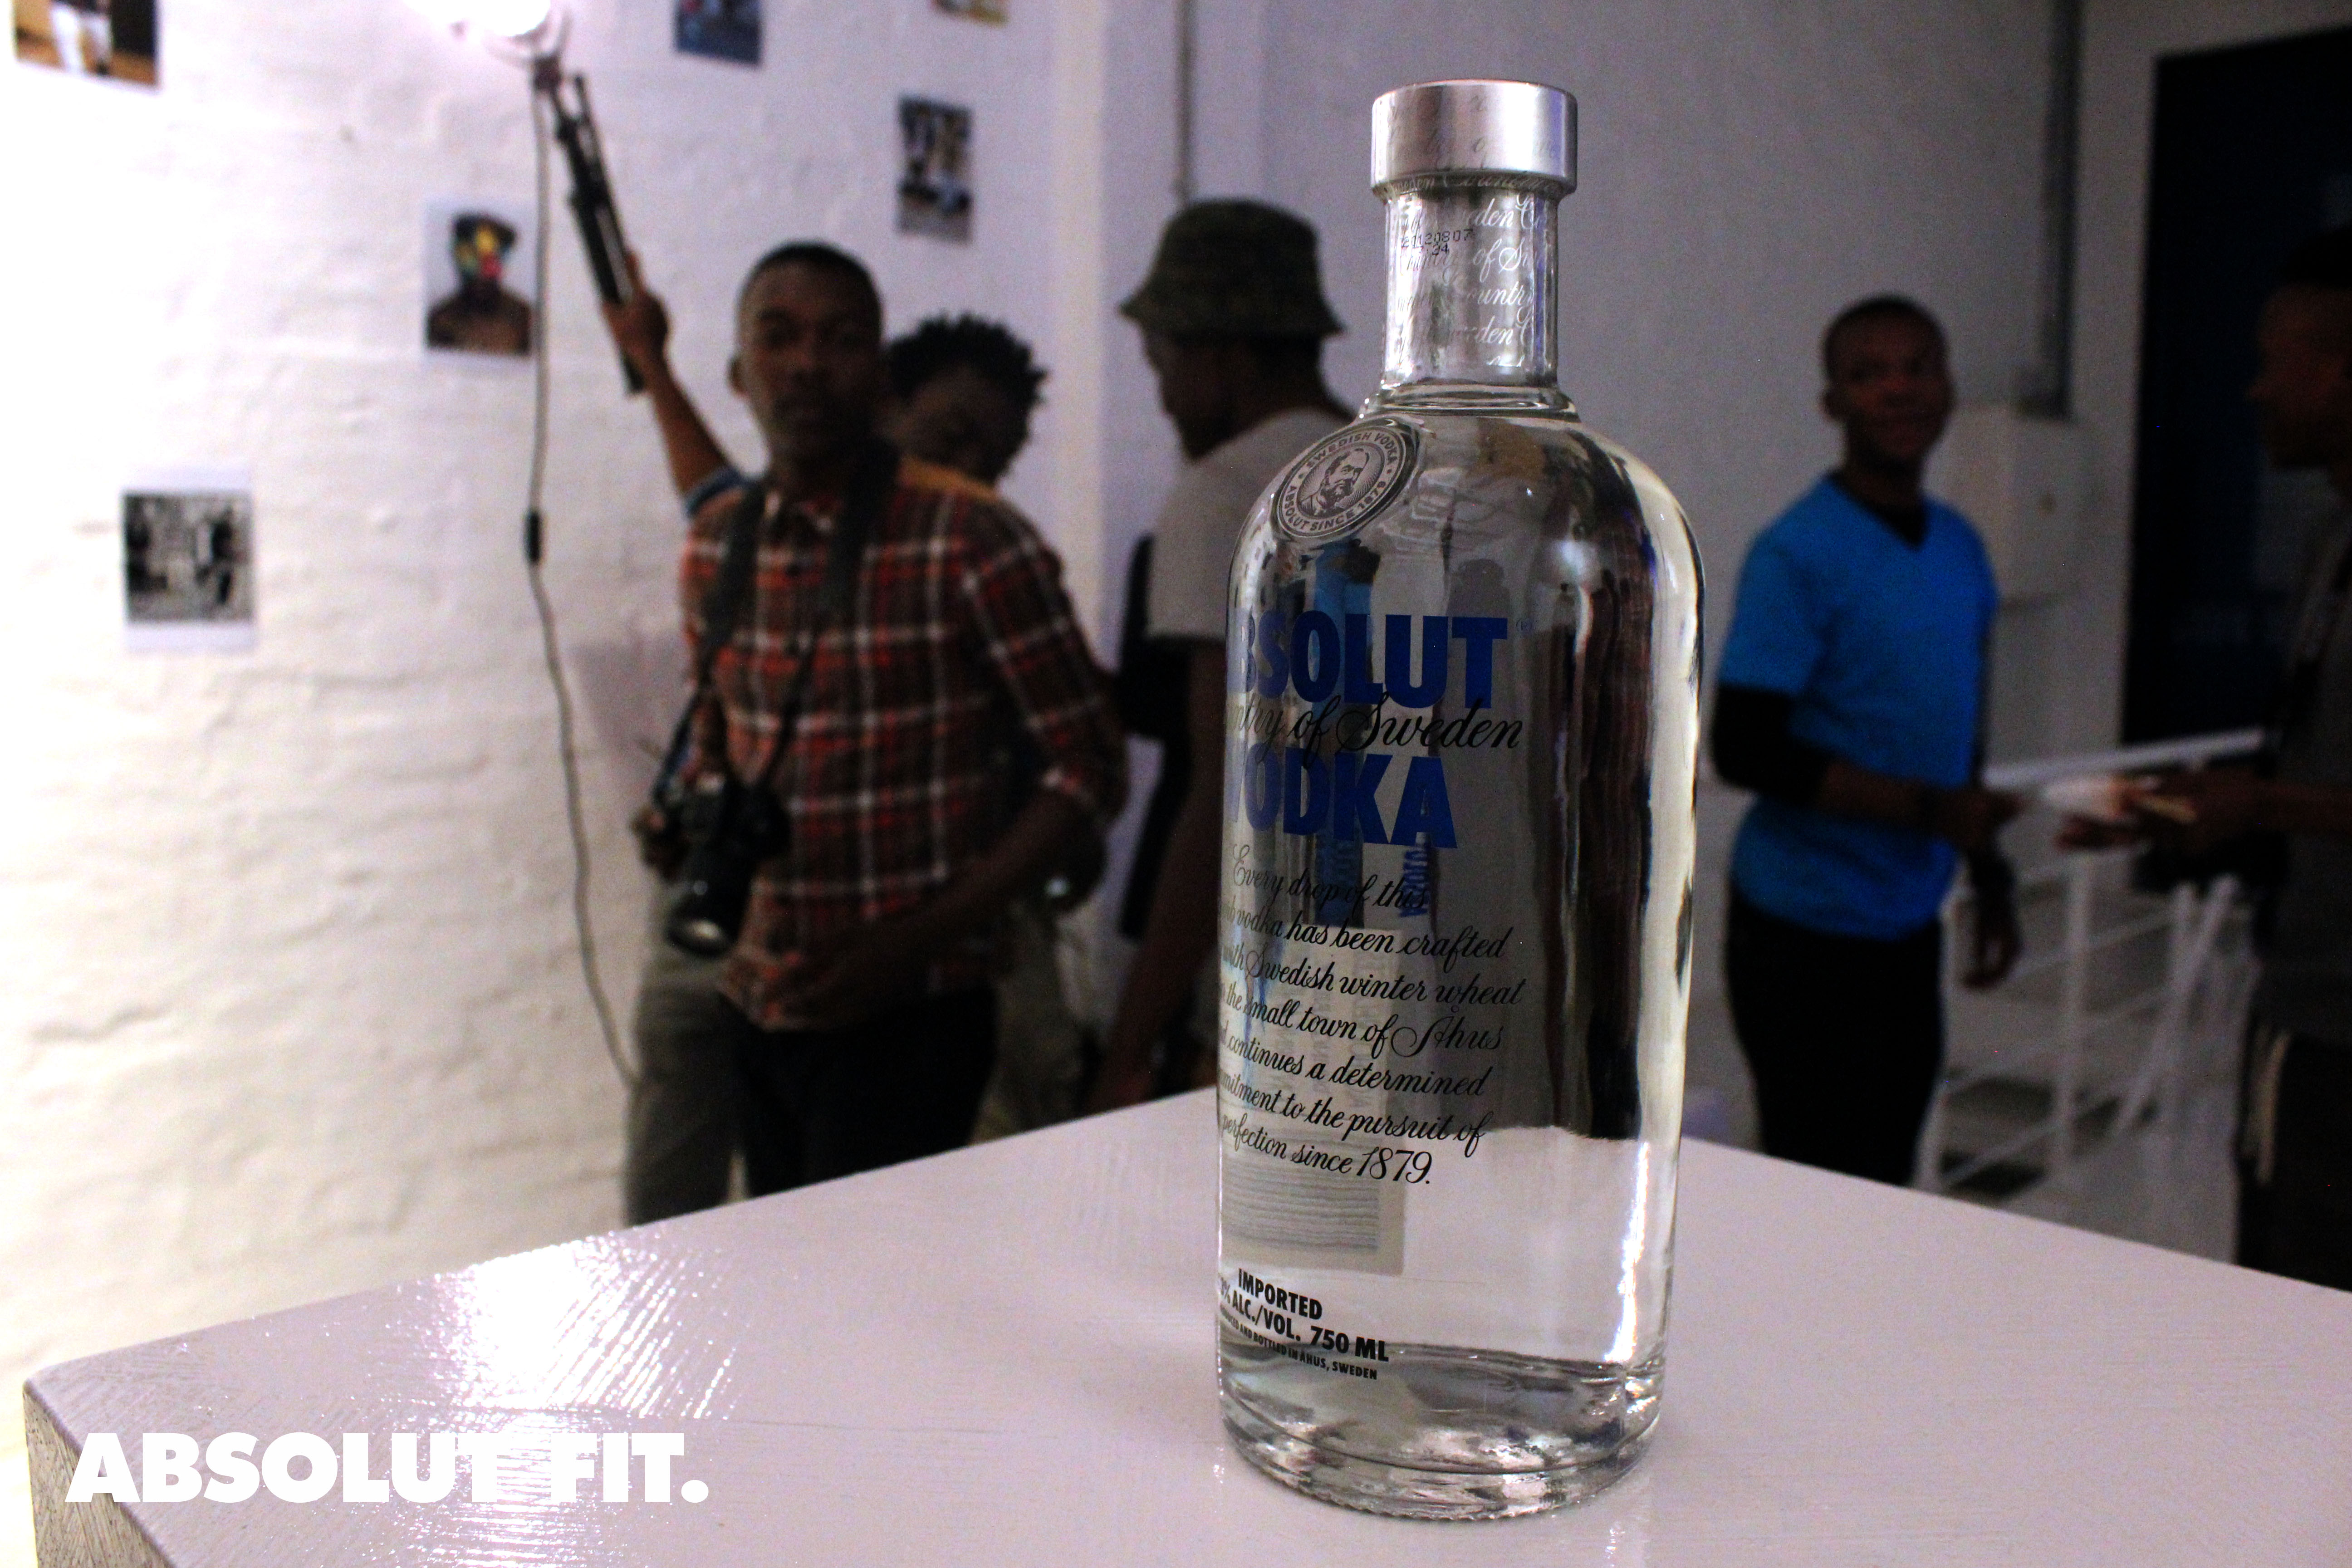 jay z One Of The Most Iconic Acts In Hip-Hop 'Jay-Z' Is A Billionaire ABSOLUT FIT 7